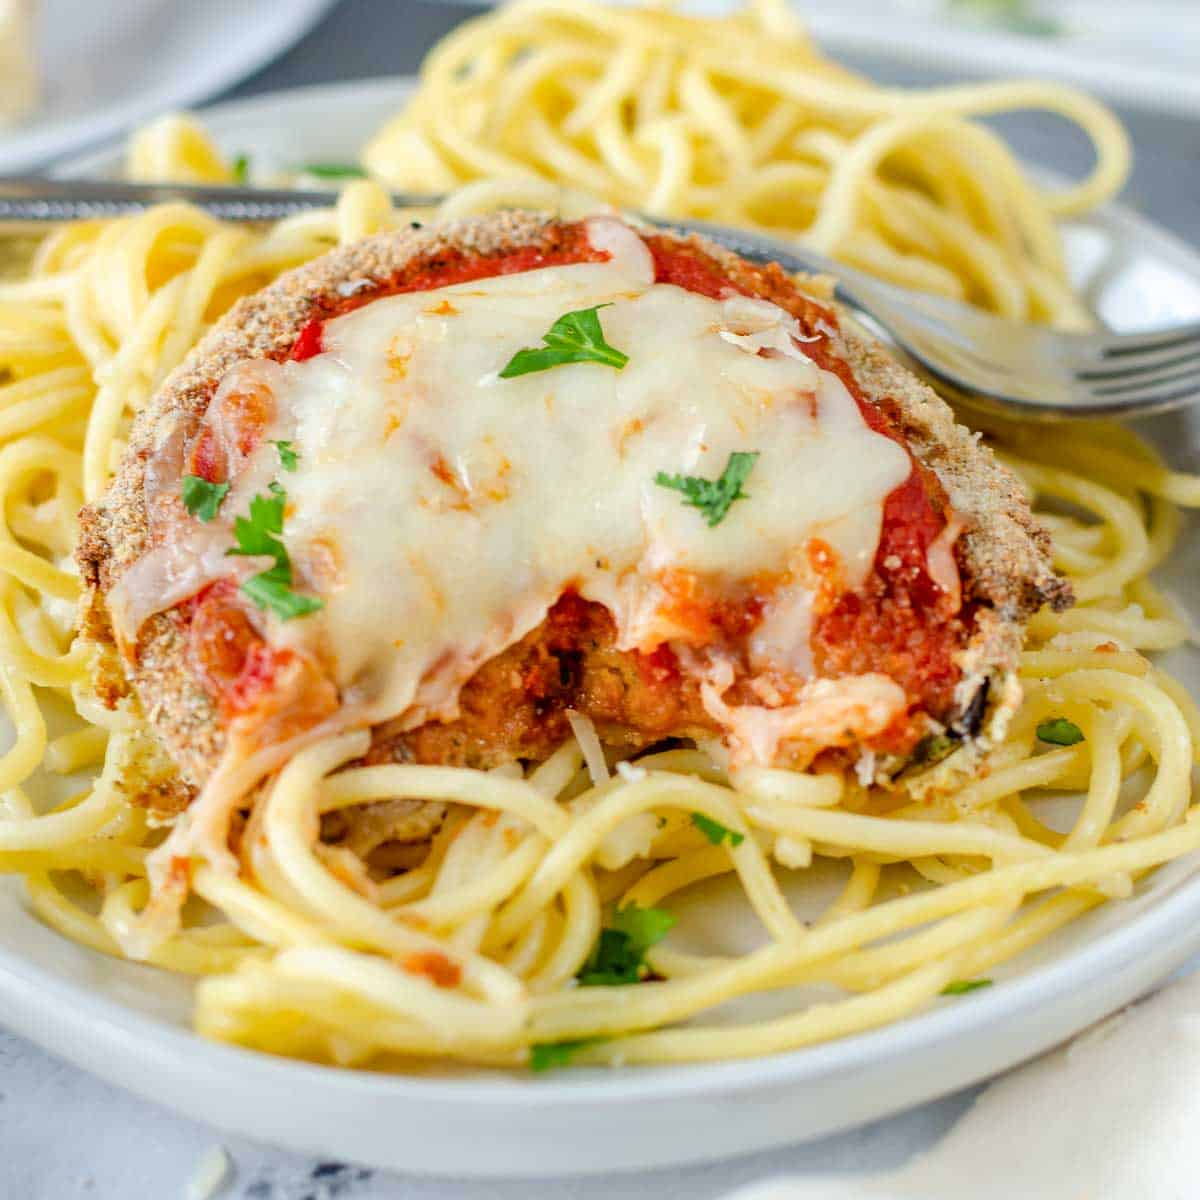 Front view of this easy eggplant parm recipes with a piece cut out to view the yummy inside of the air fried eggplant.